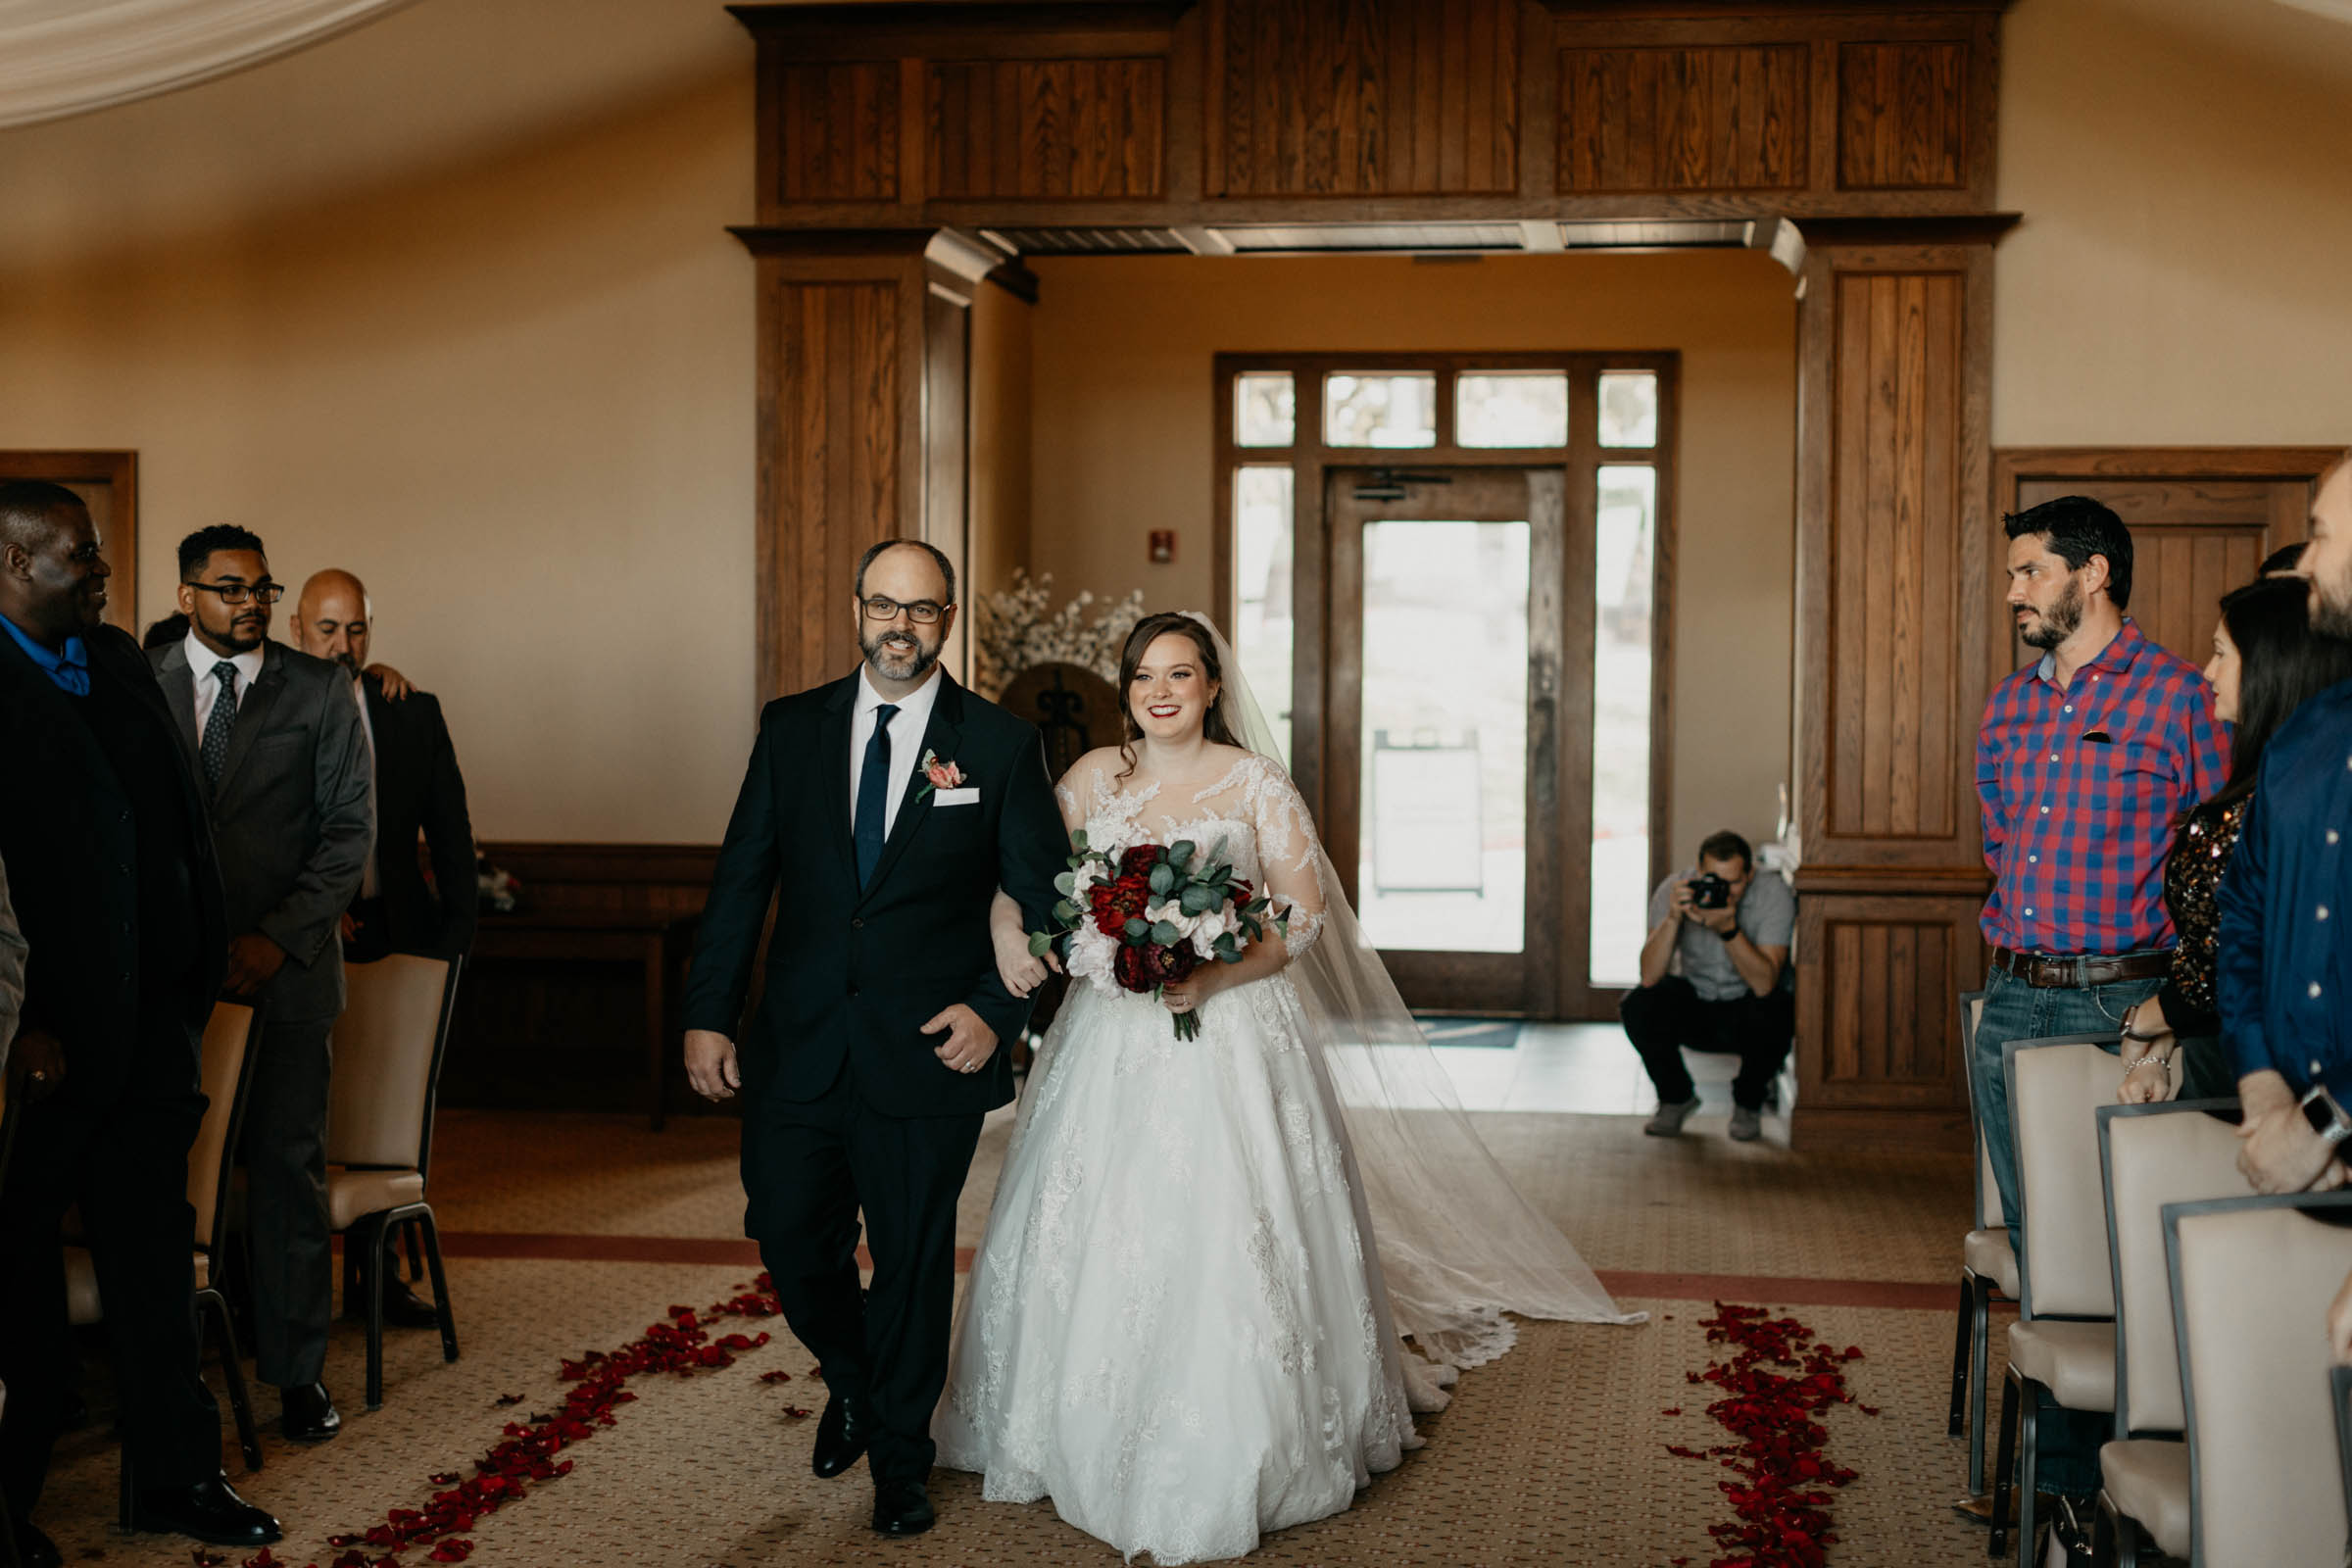 stunning bride walking down the aisle in a princess dress